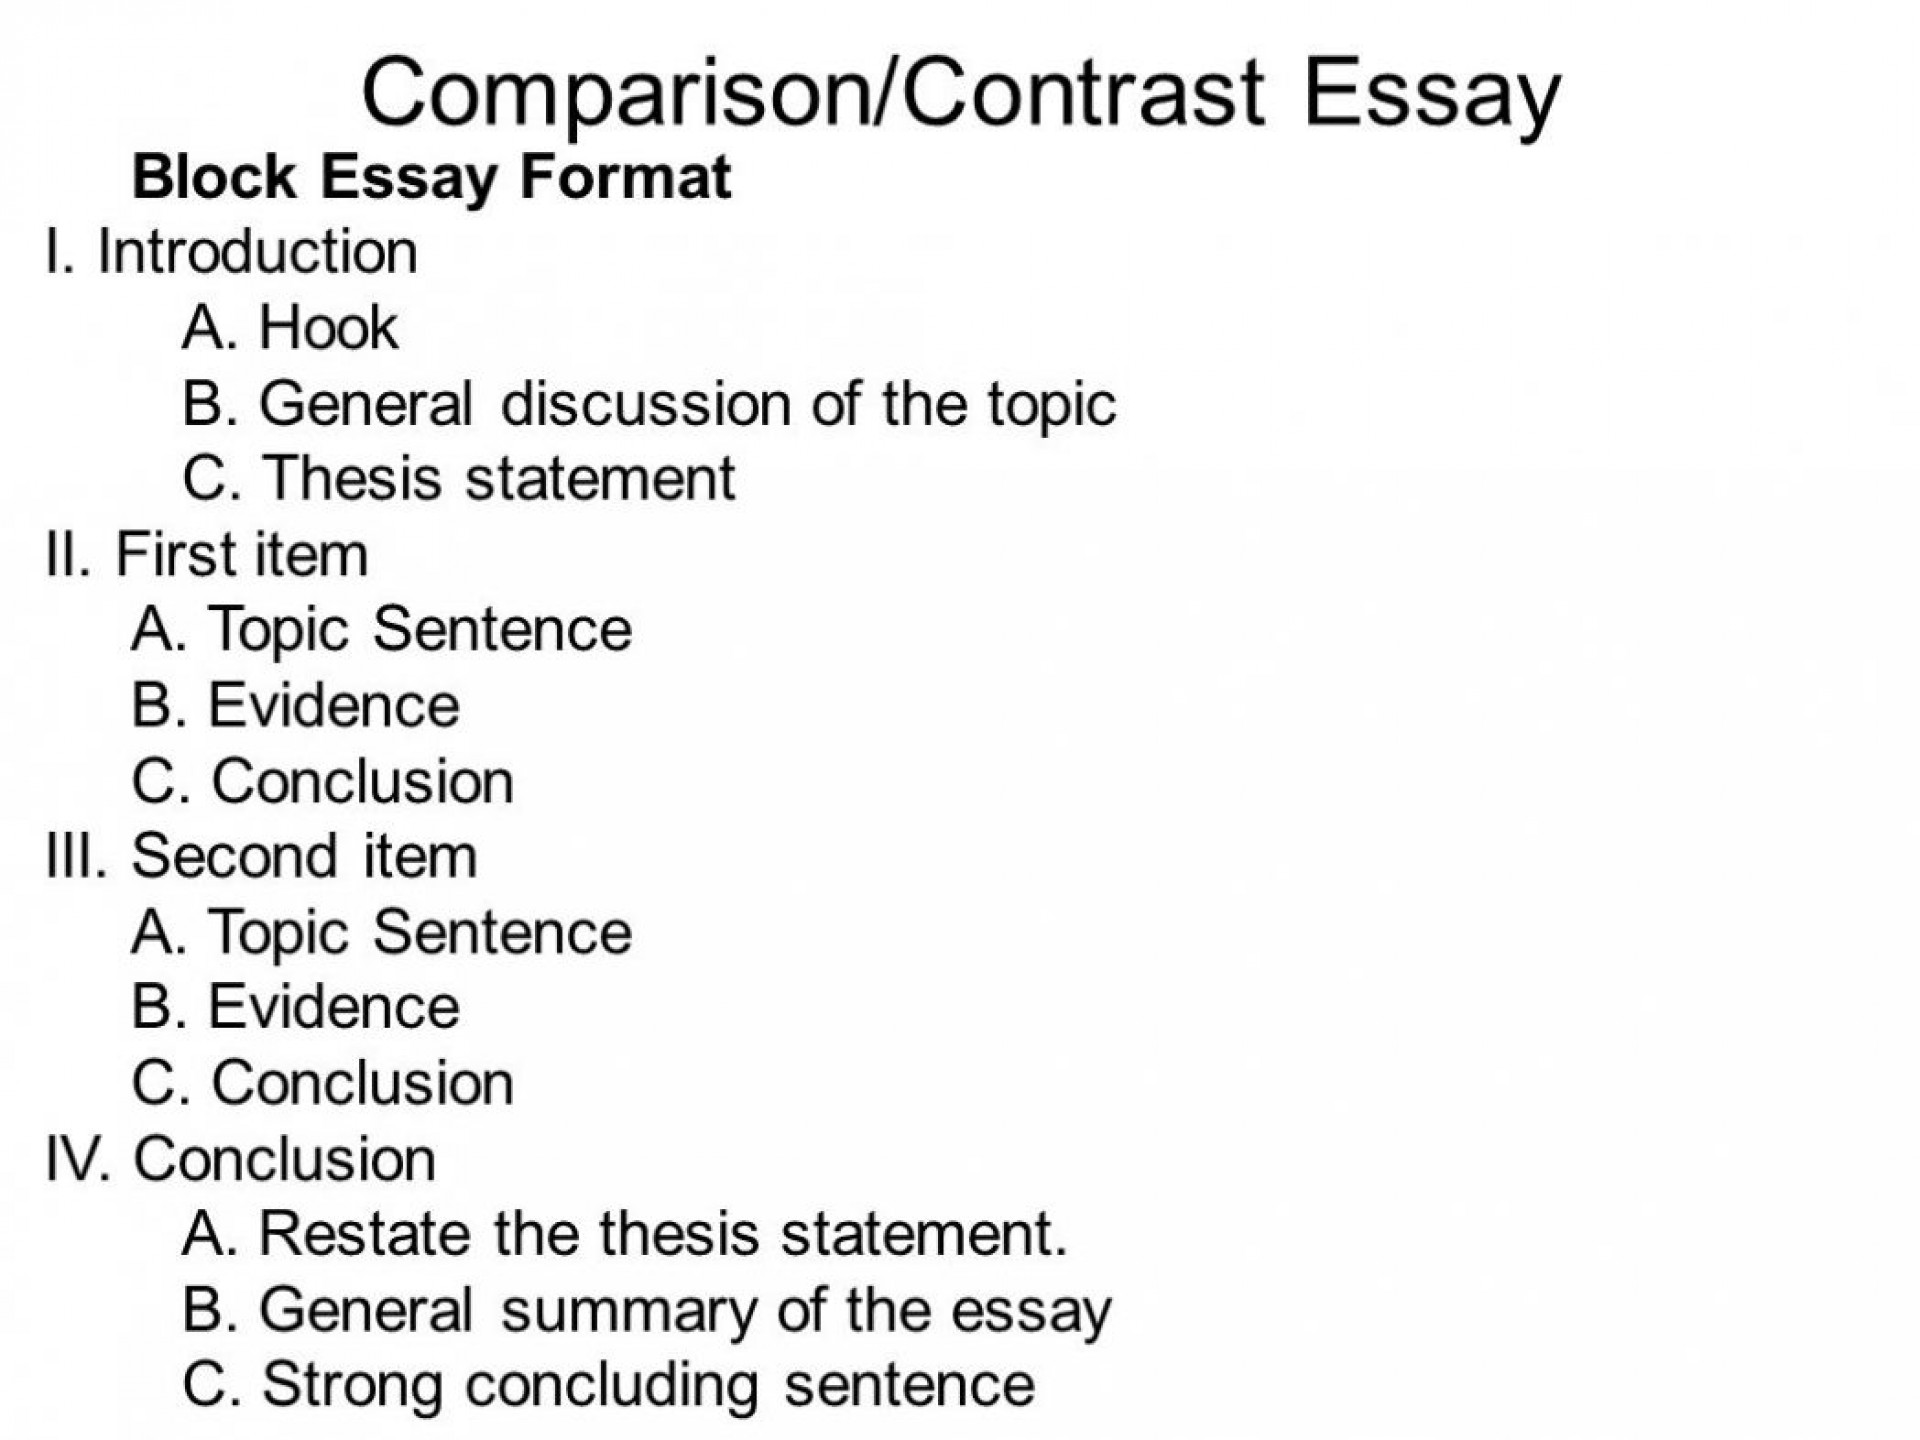 005 Essay Example Good Compare And Contrast What Are Topics Argumentative About Youth Sports Sli Dealing With Medicine Unbelievable The Great Gatsby Tom Examples Middle School Movie Book 1920